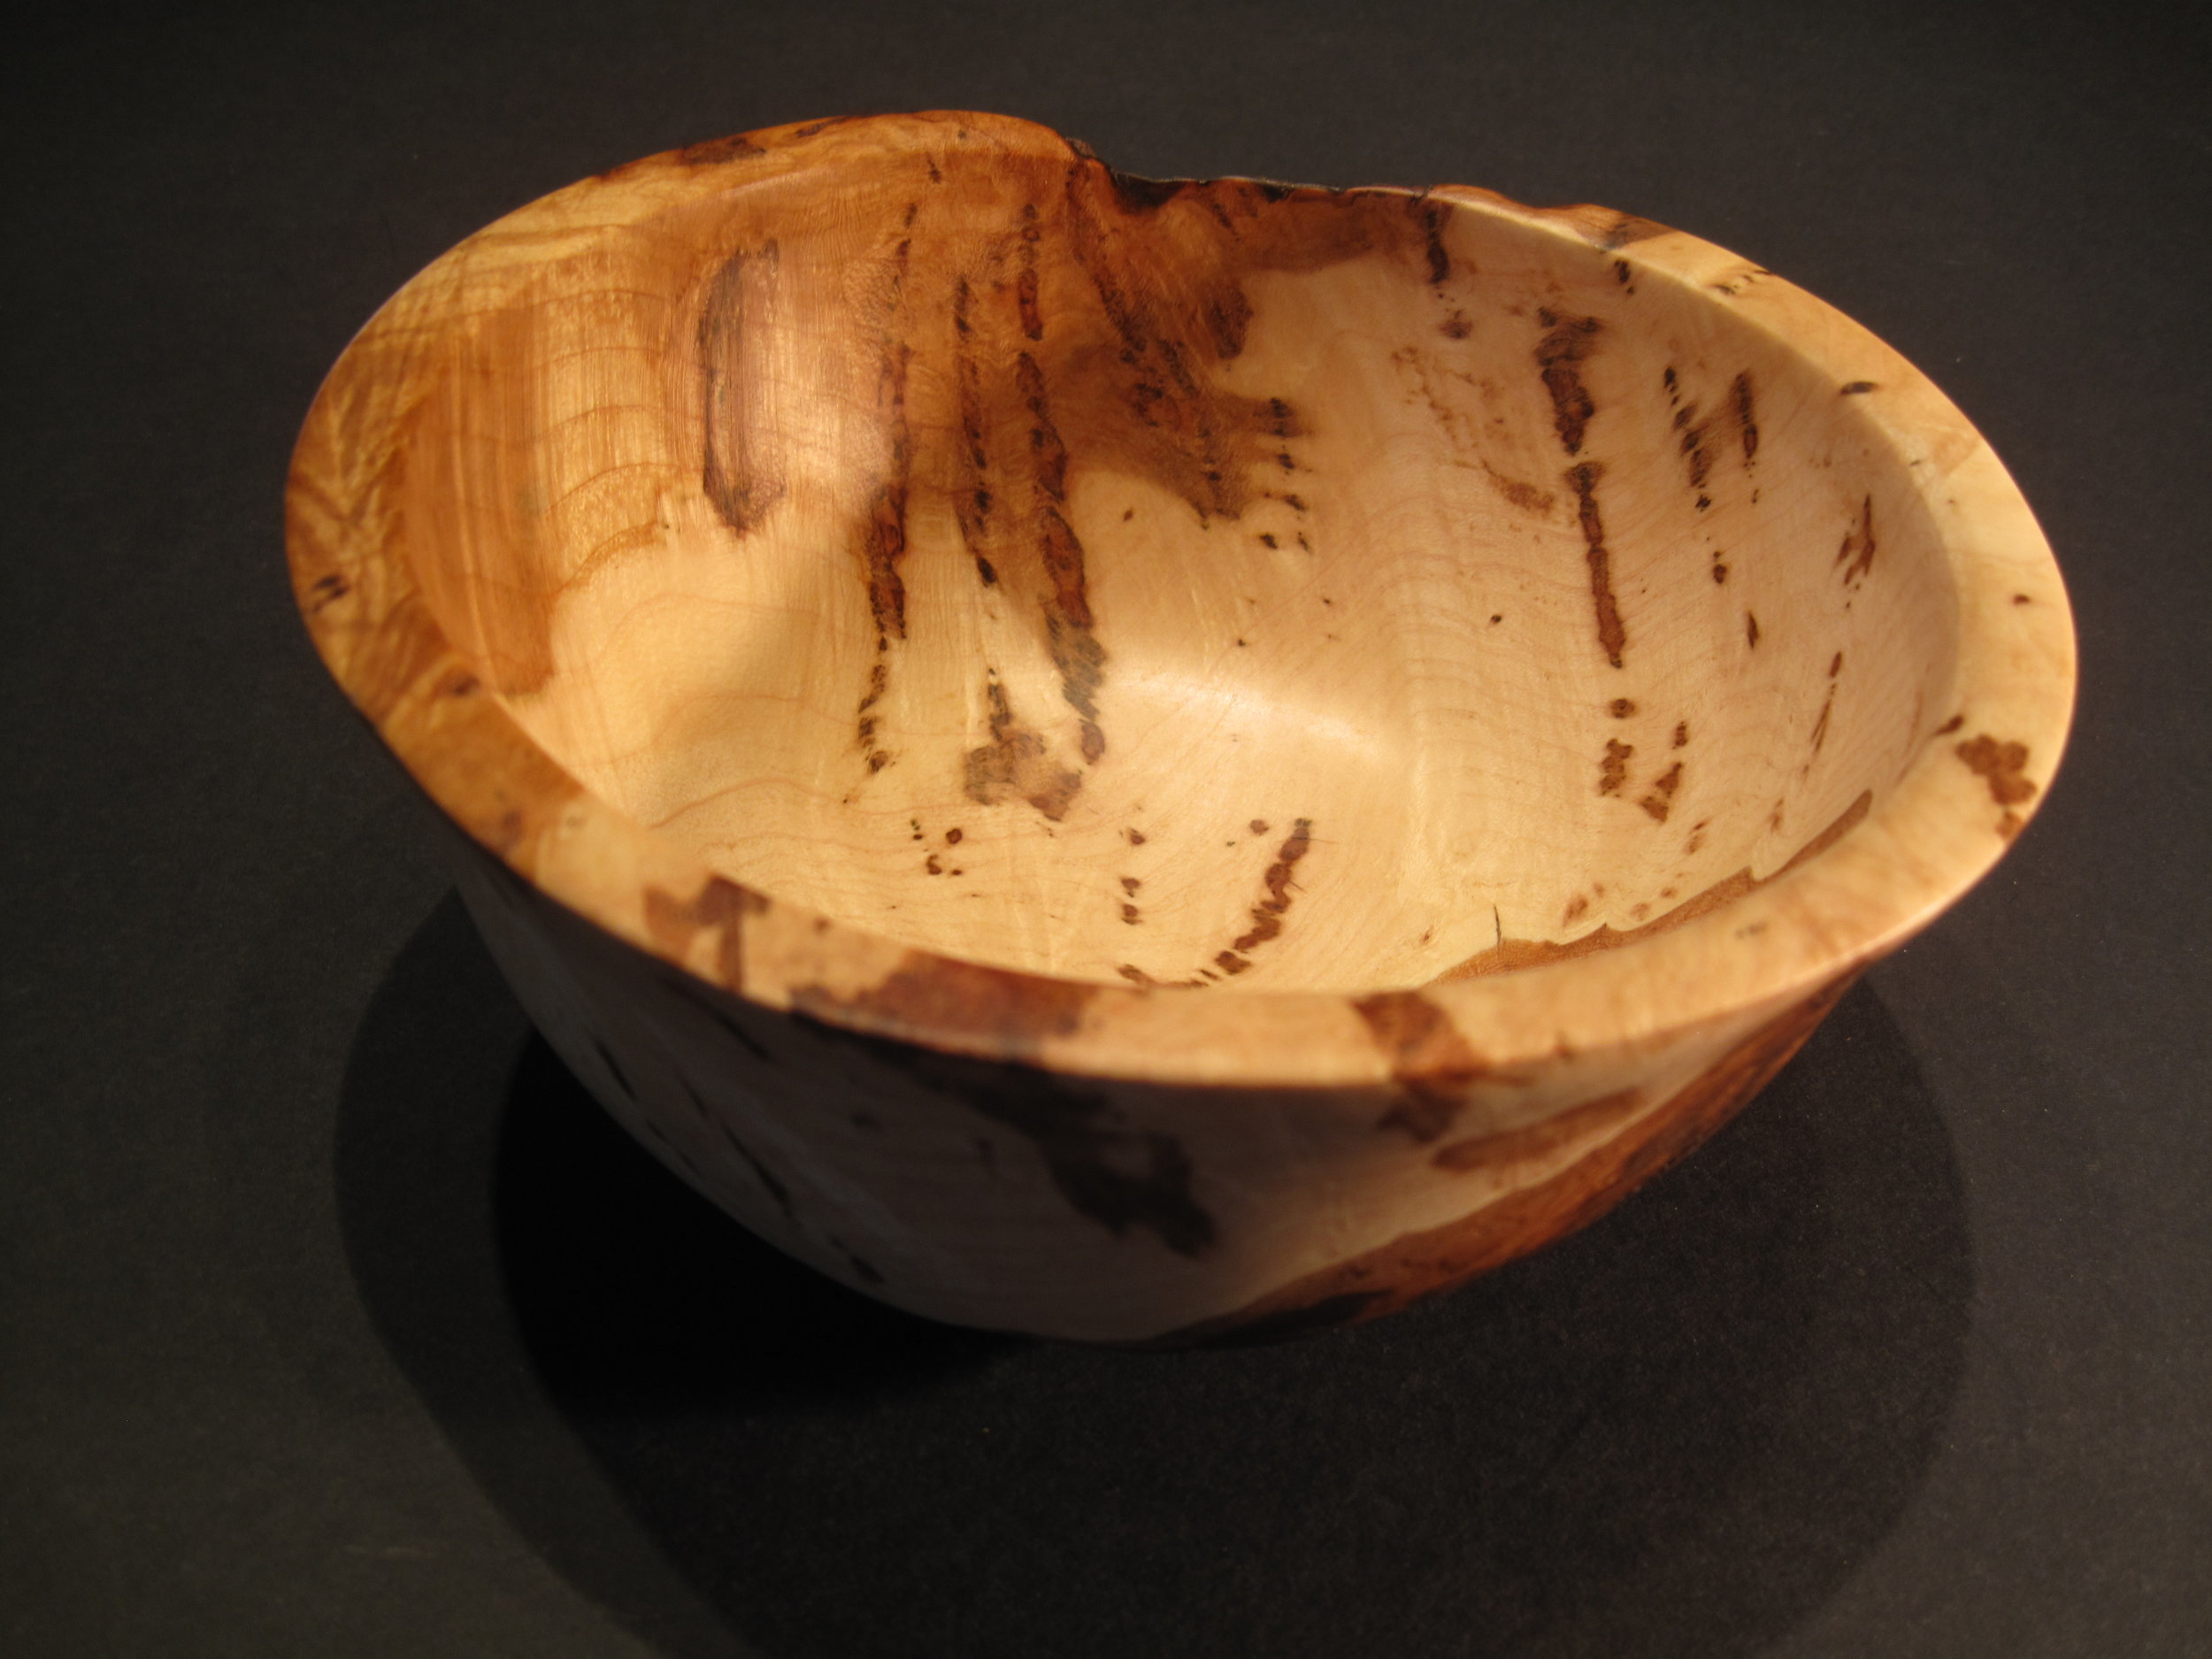 Fairfield Farm Bowls - Bowls and kitchen implements made from Vermont hardwoods, including maple, butternut, birch, and black cherry